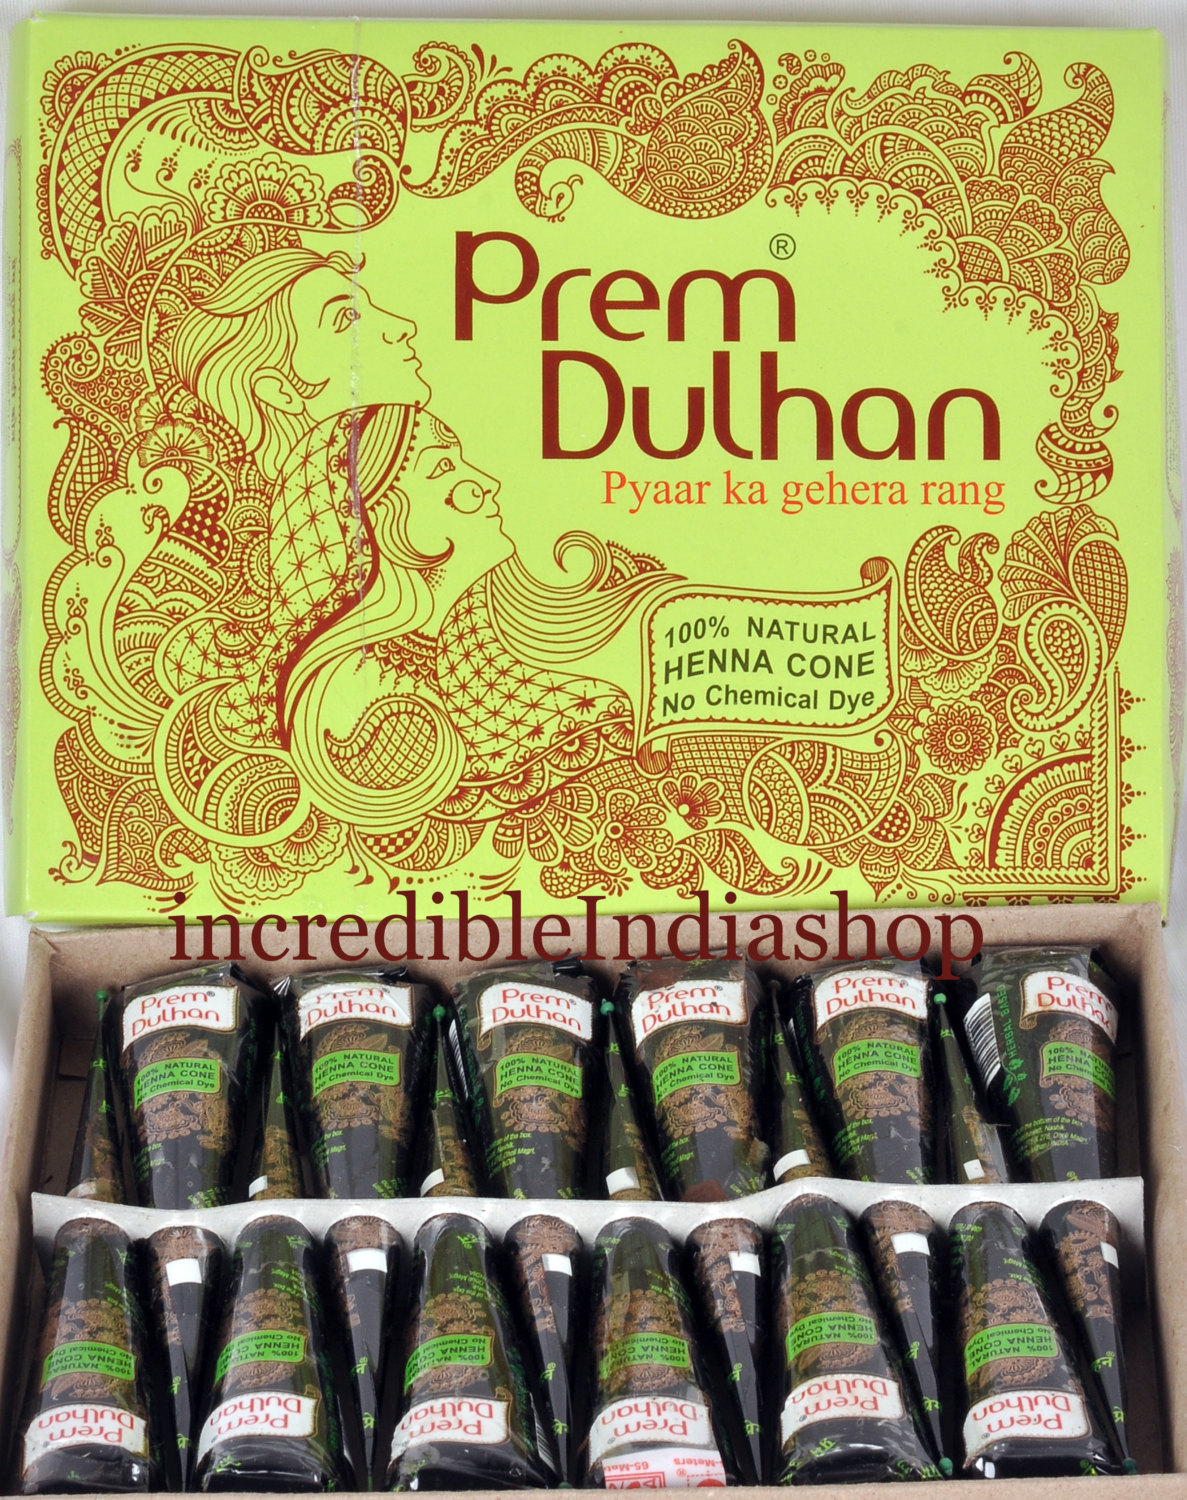 12 X Henna Cone Prem Dulhan Herbal And 50 Similar Items Tatto Temporary Sticker Hb577 Tattoo At Amazing Price